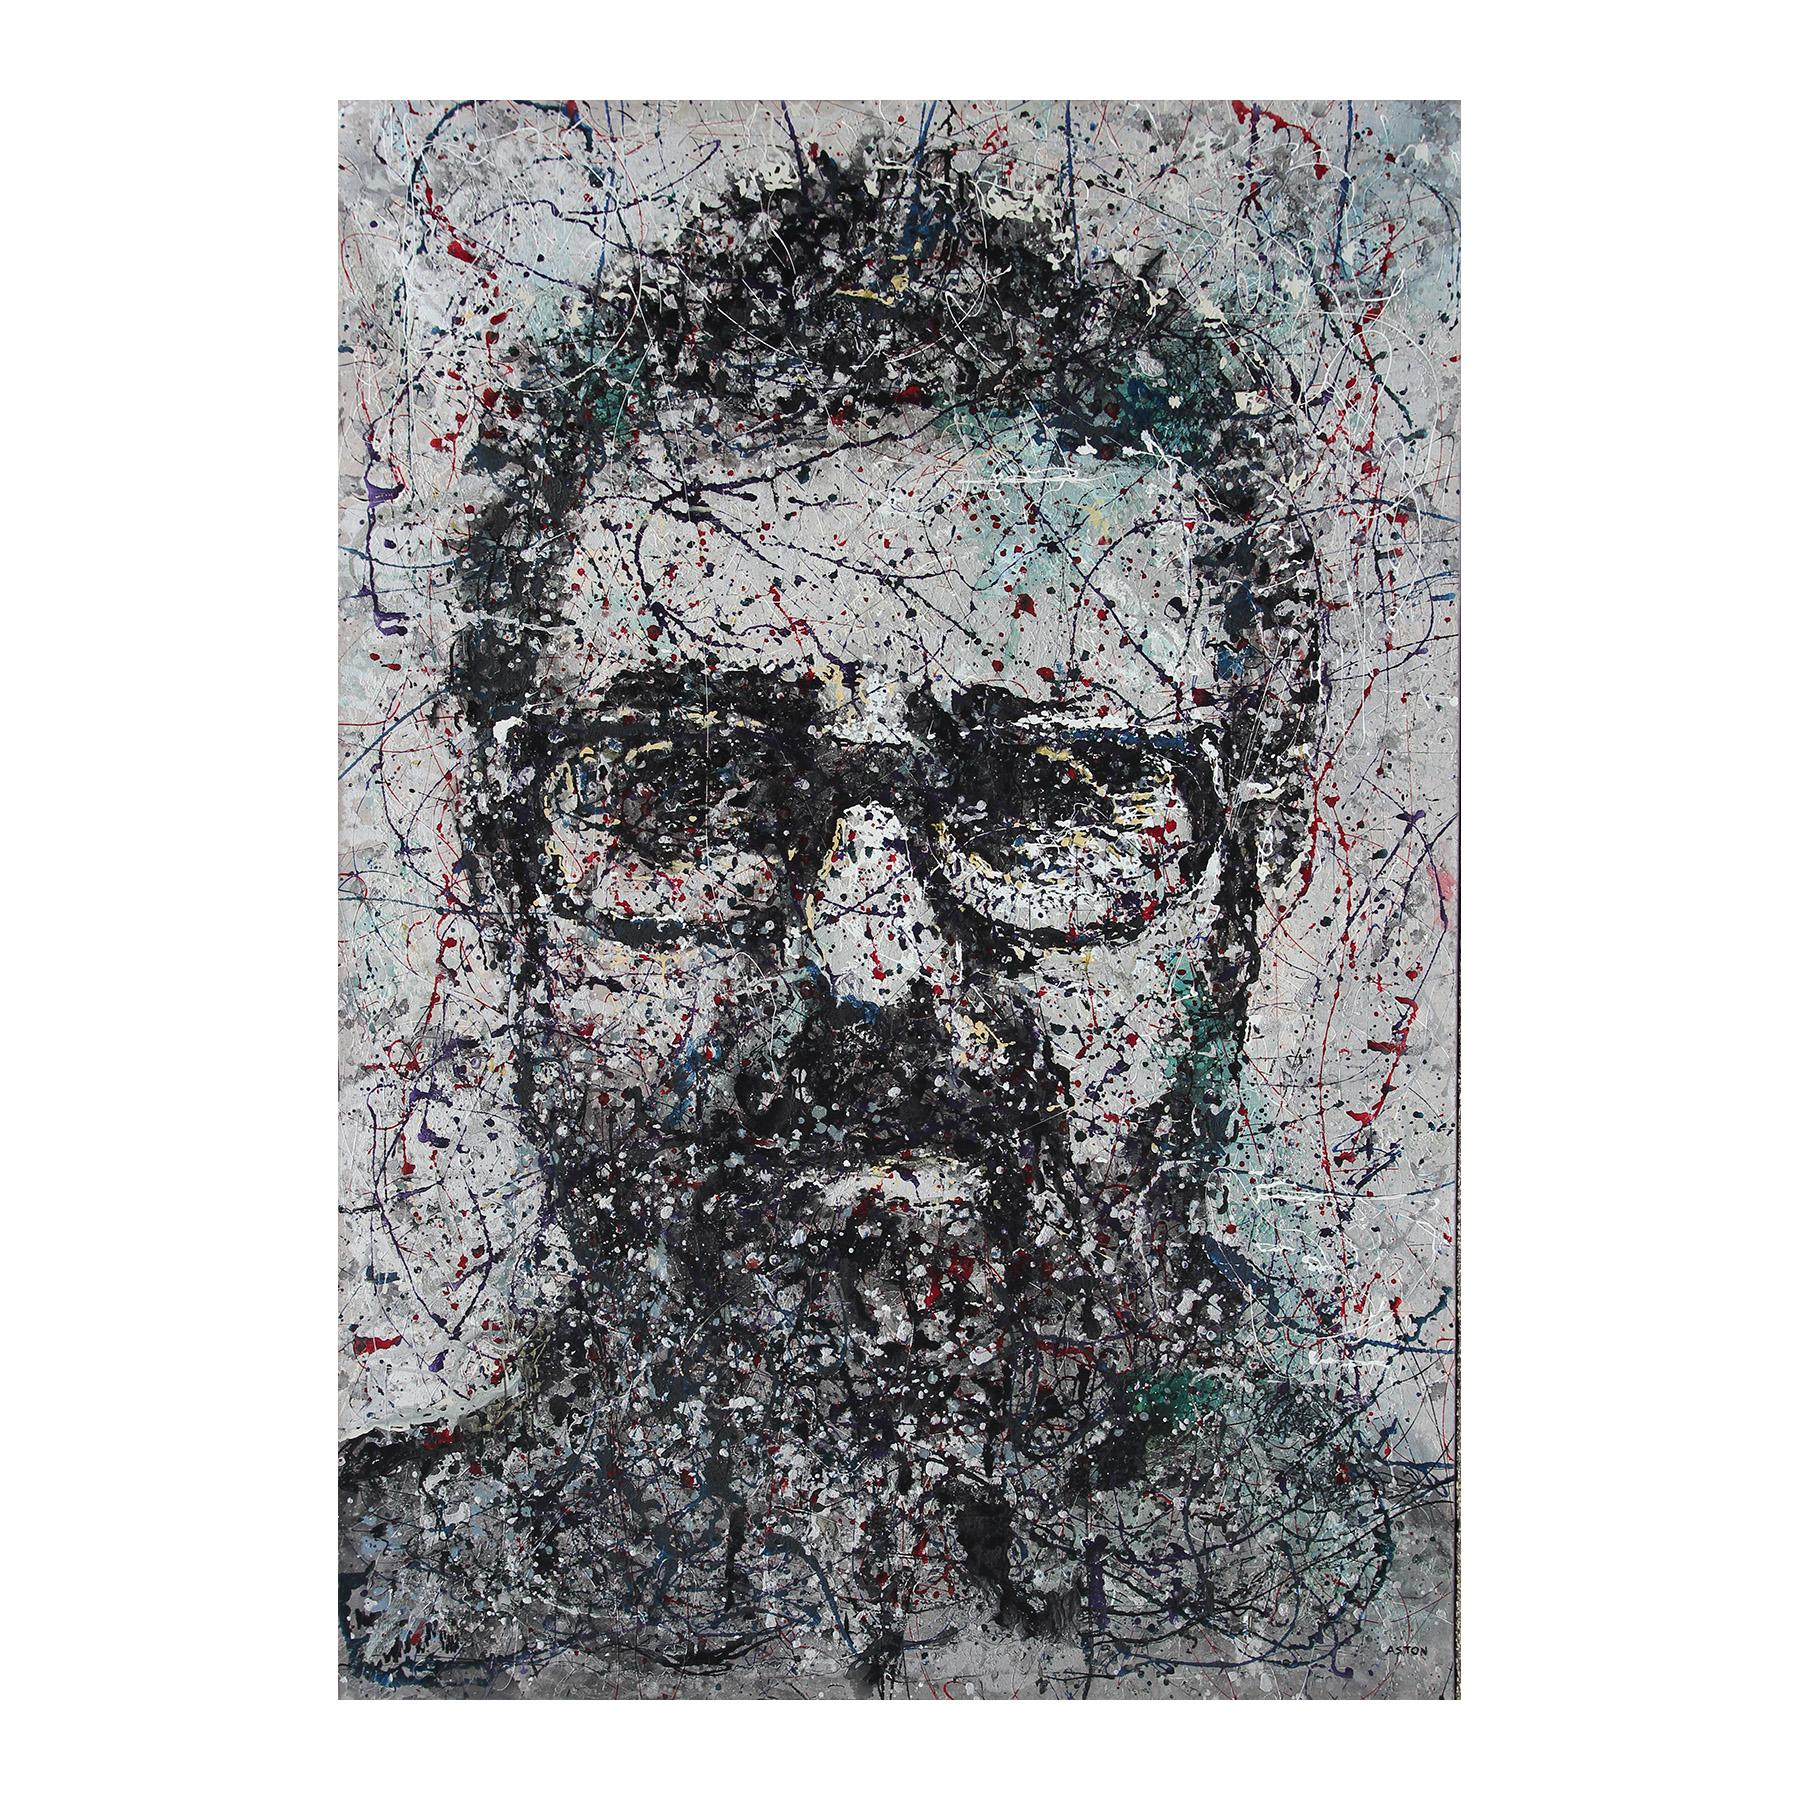 Large Silver, Black, and Red Portrait Abstract Splatter Painting on Canvas